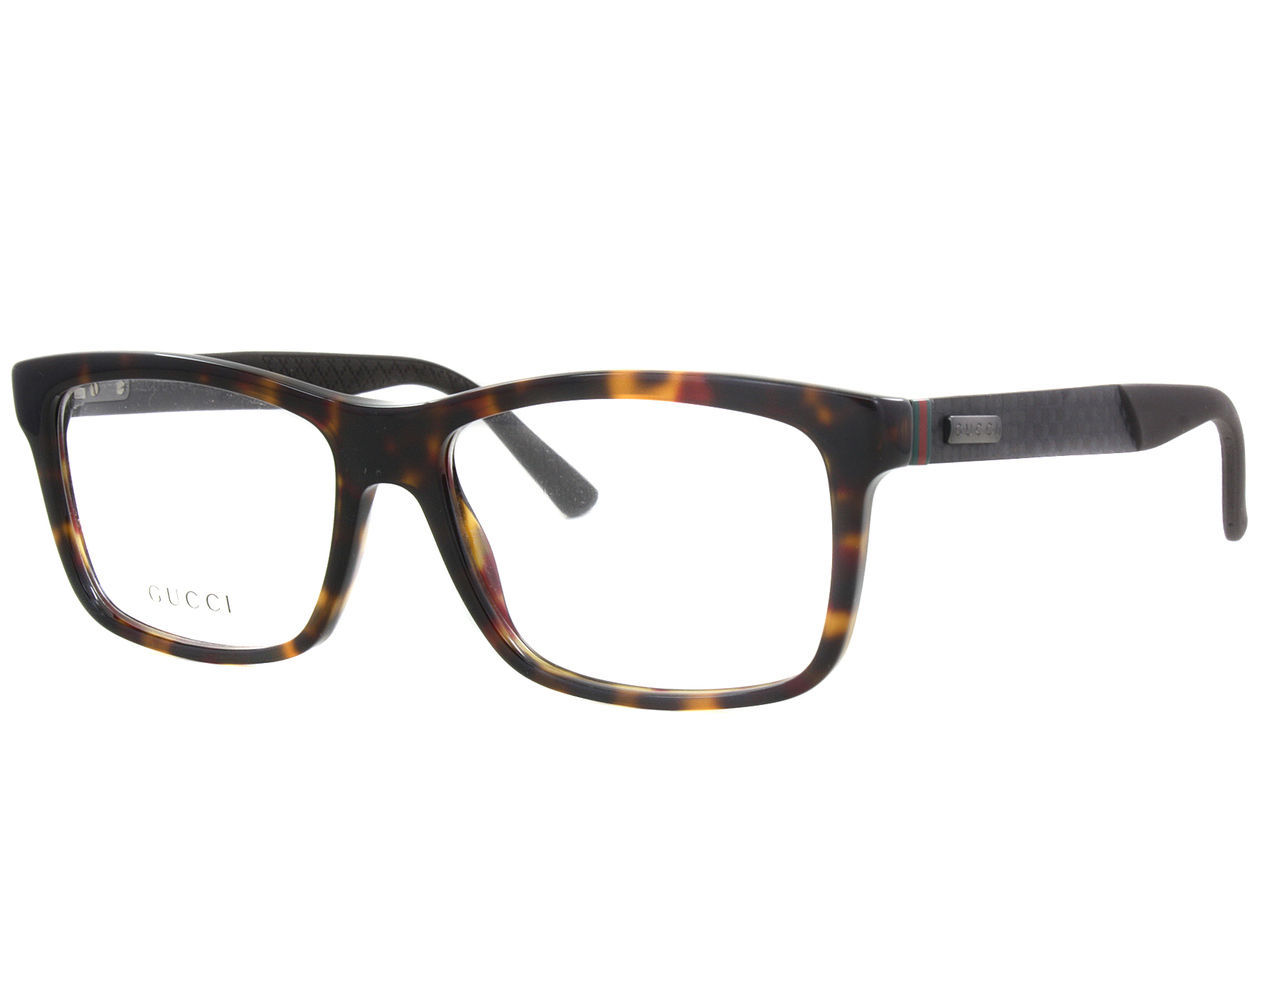 03e51946467 Gucci Eyeglass Frame  54 listings